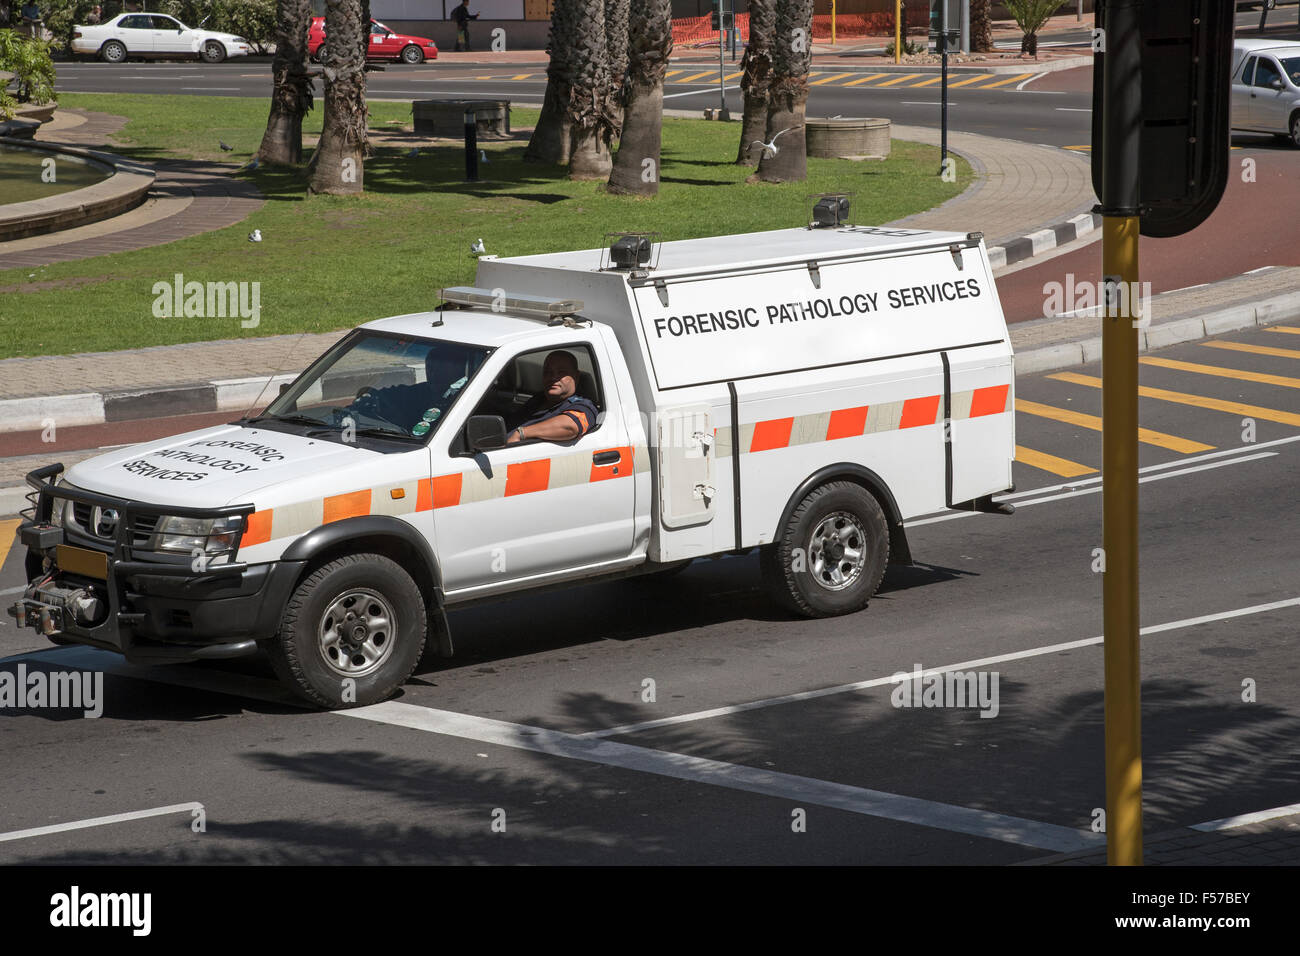 Forensic Pathology services vehicle Cape Town city centre South Africa - Stock Image